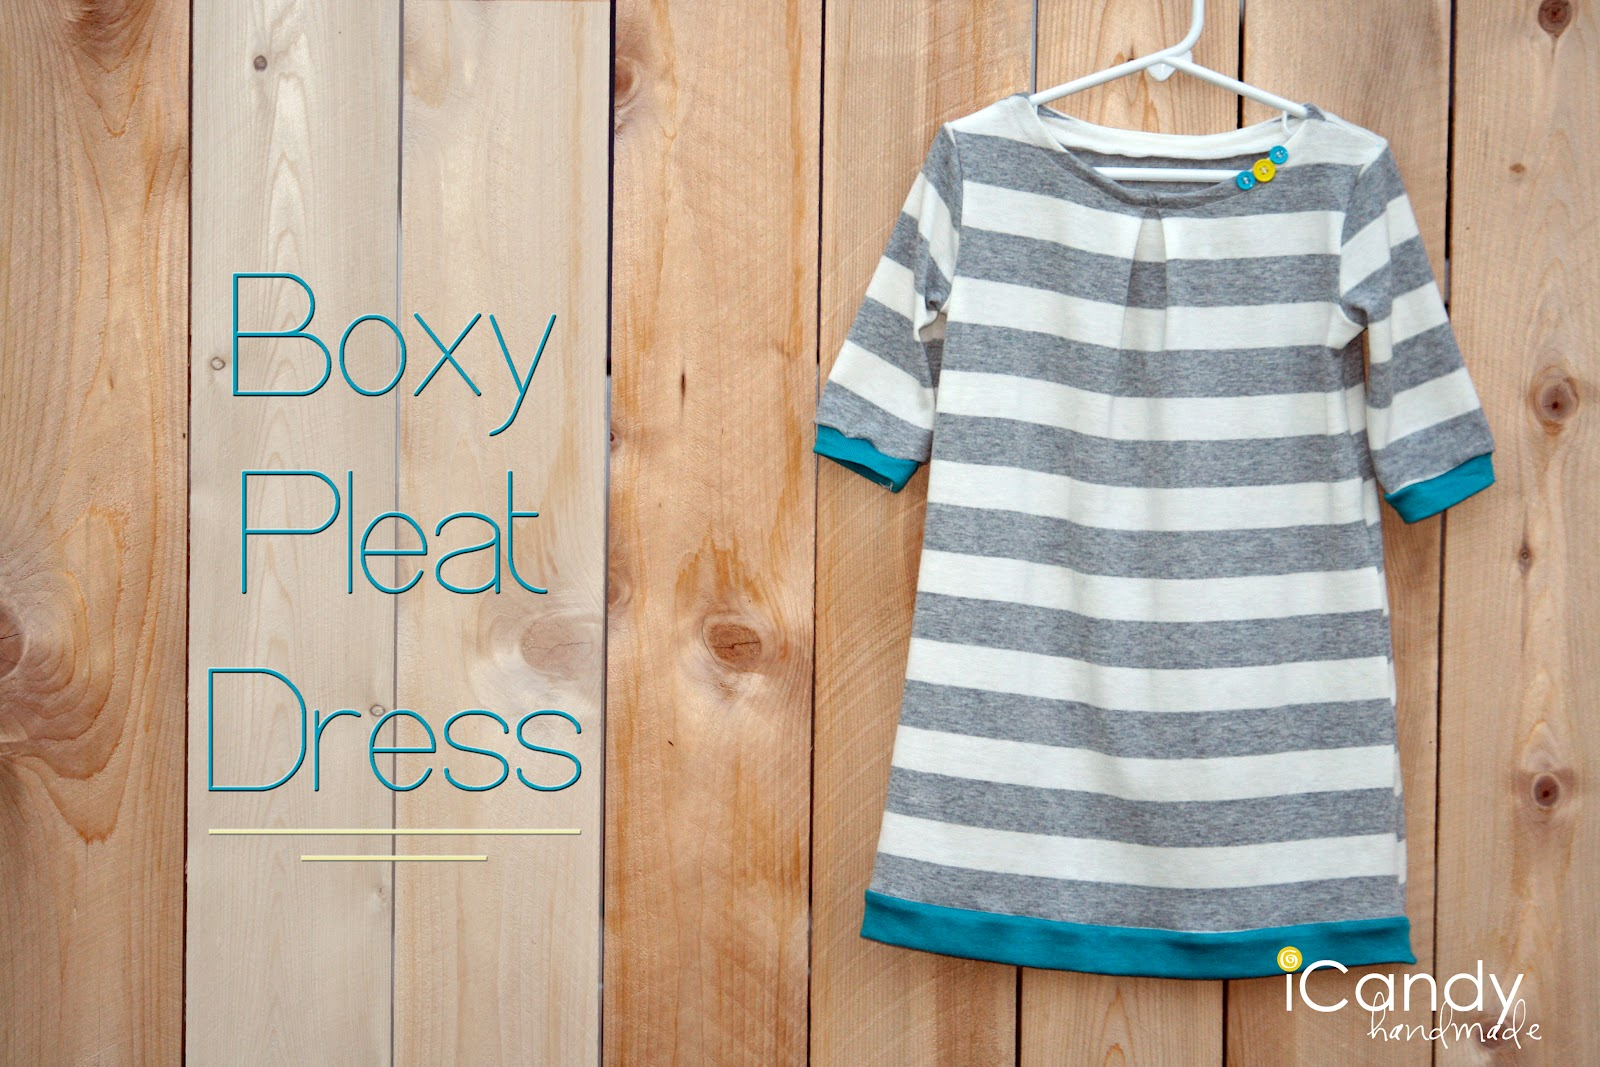 Boxy pleat dress